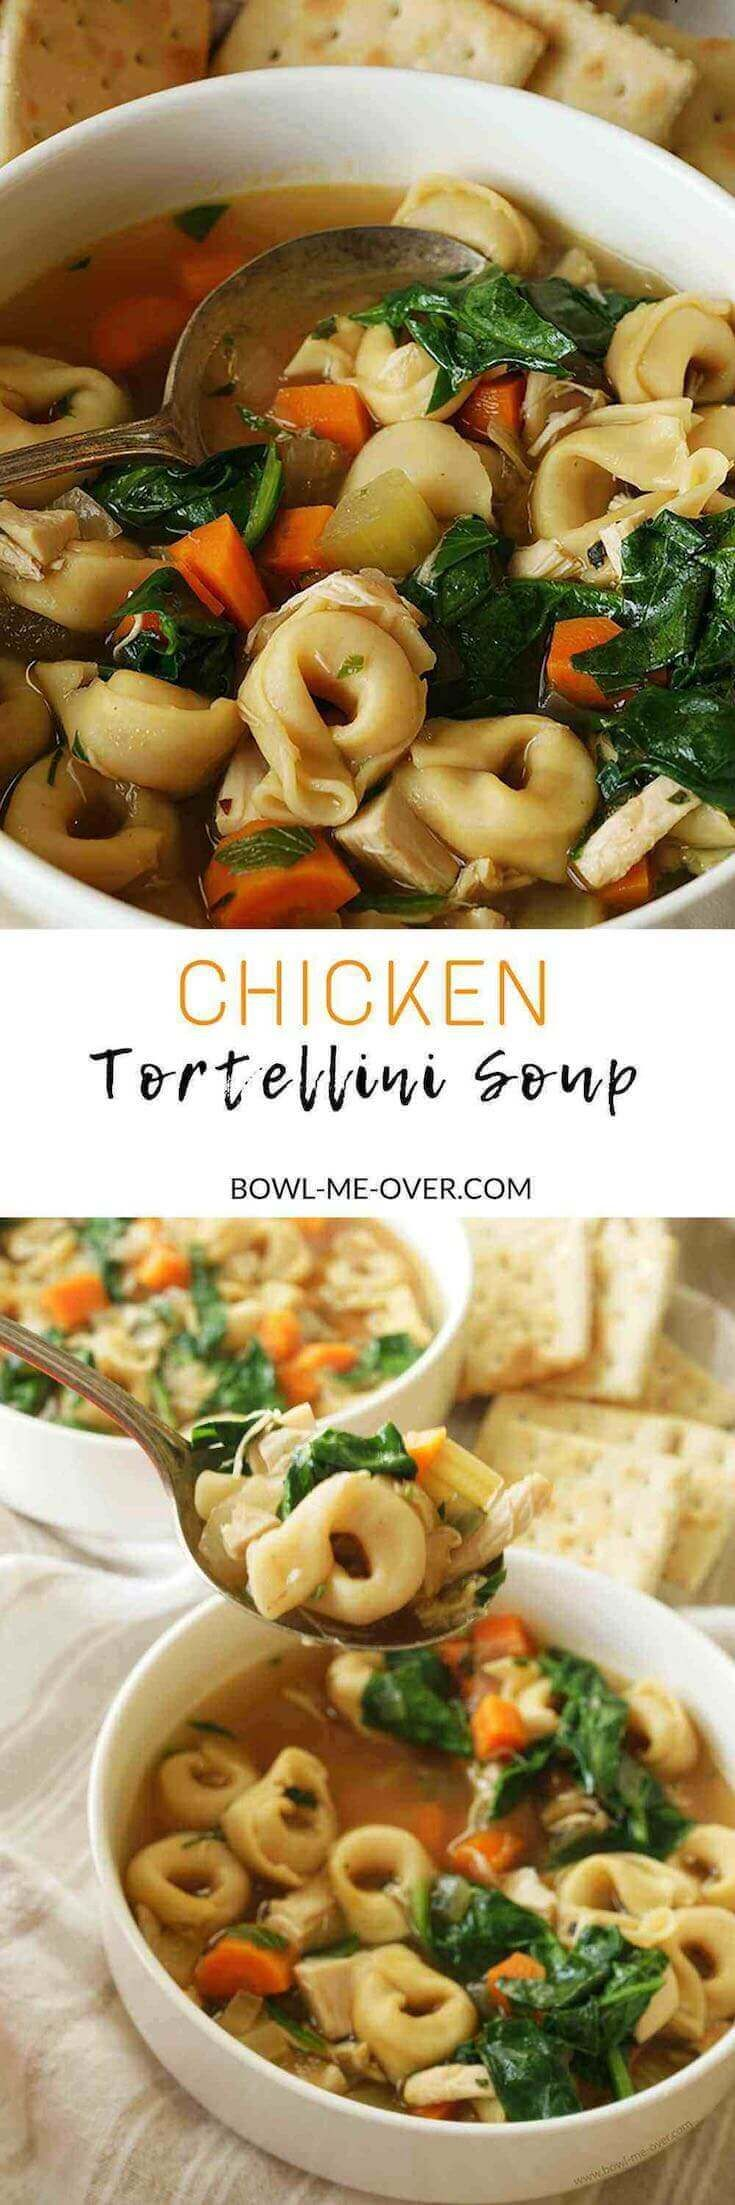 What to make for dinner? How about Chicken Tortellini Soup - only 30 minutes to make and so delicious, it's a great meal to serve your family.